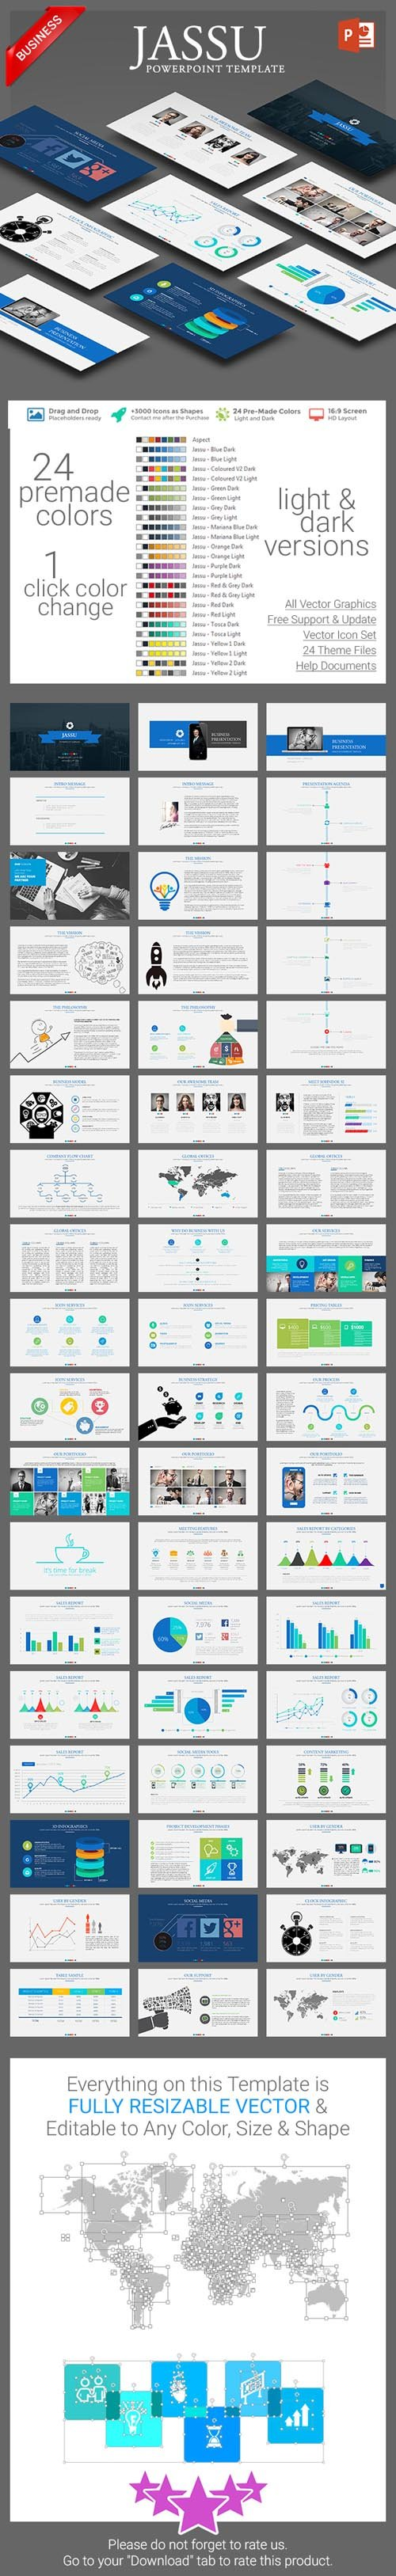 Jassu Business Template 13377682